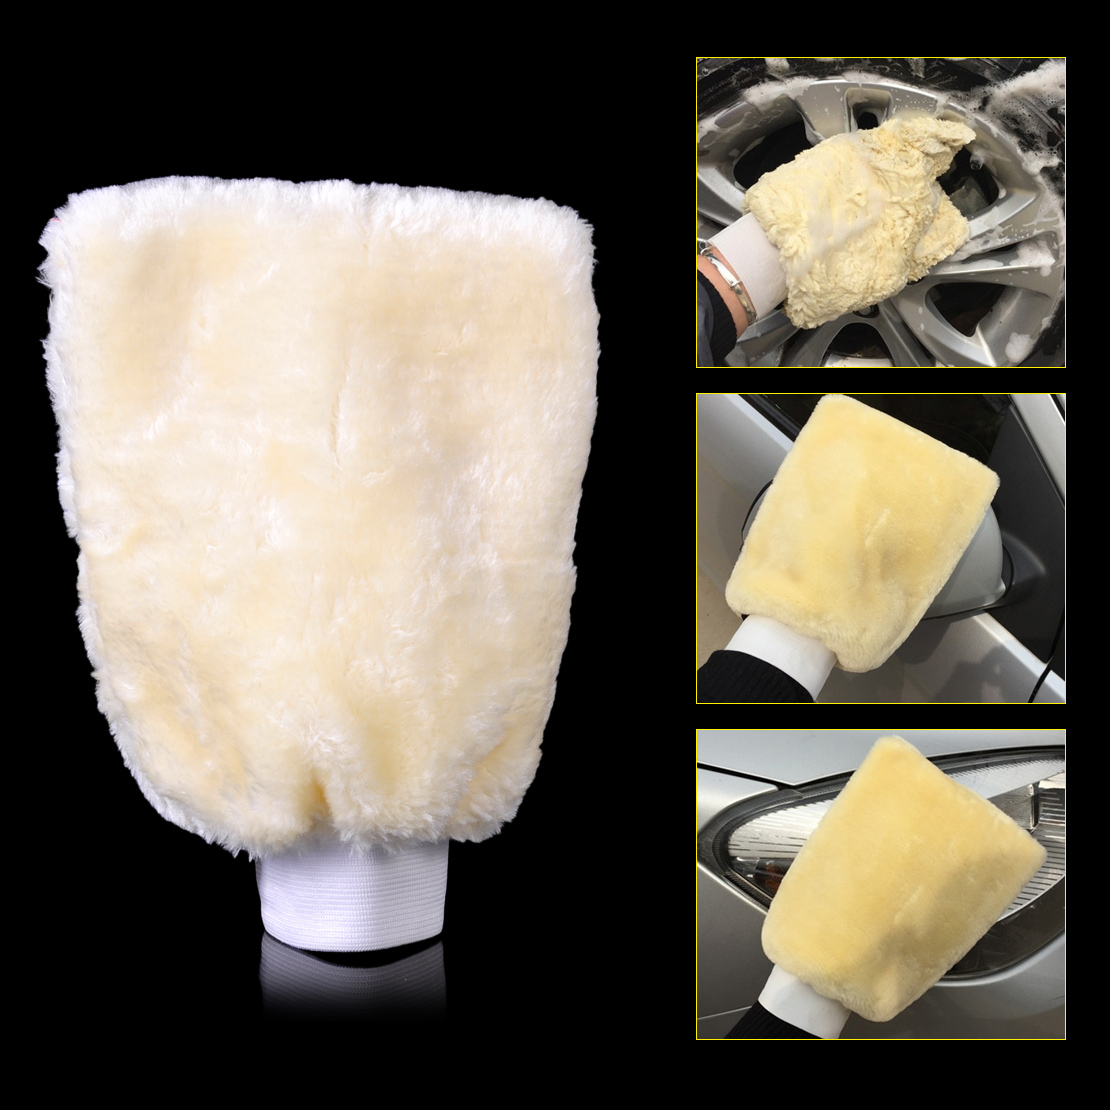 CITALL Auto Car Washer Soft Sheepskin Lambswool Cleaning Wash Glove Duster Mitt Polishing Wax for Ford VW Audi Nissan BMW Toyota